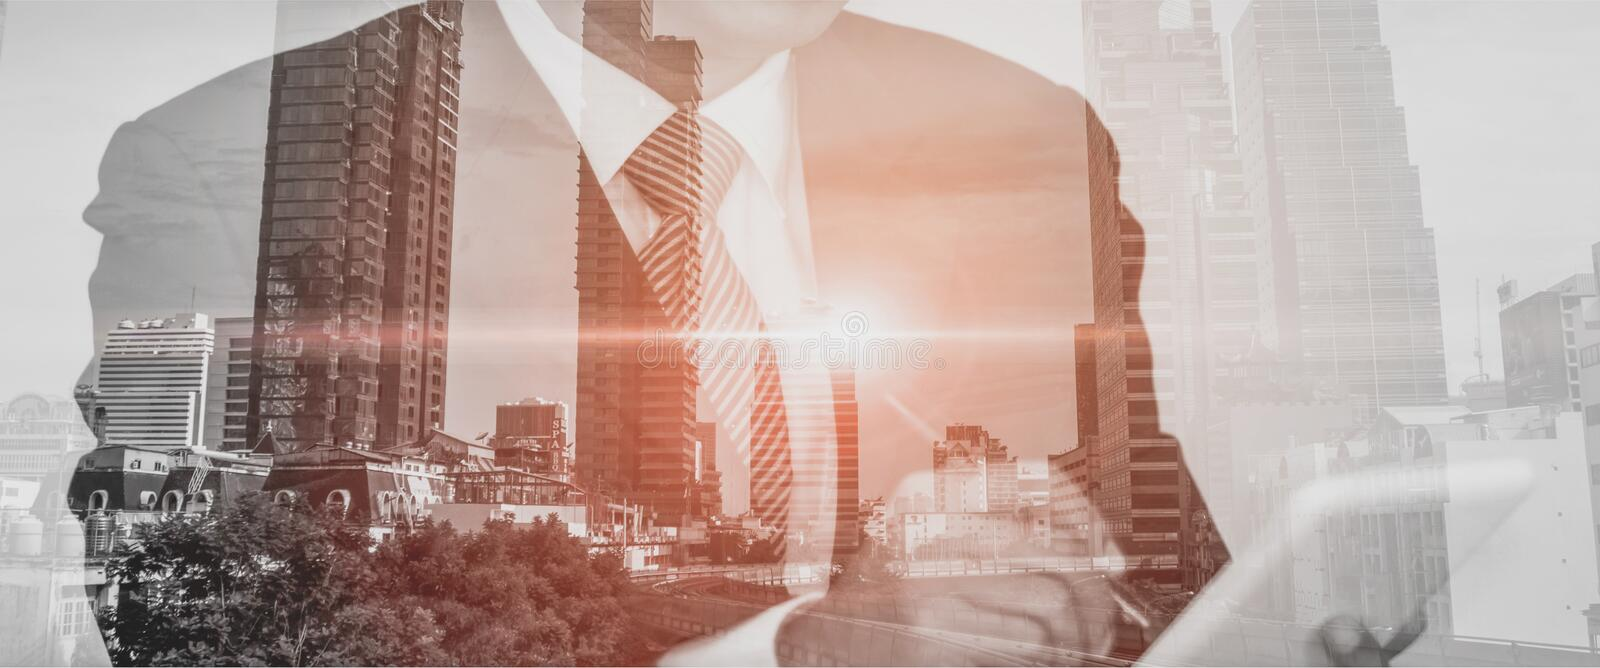 Businessman Analyze marketing through hand held tablet, Background is a city landscape with a quick stock images